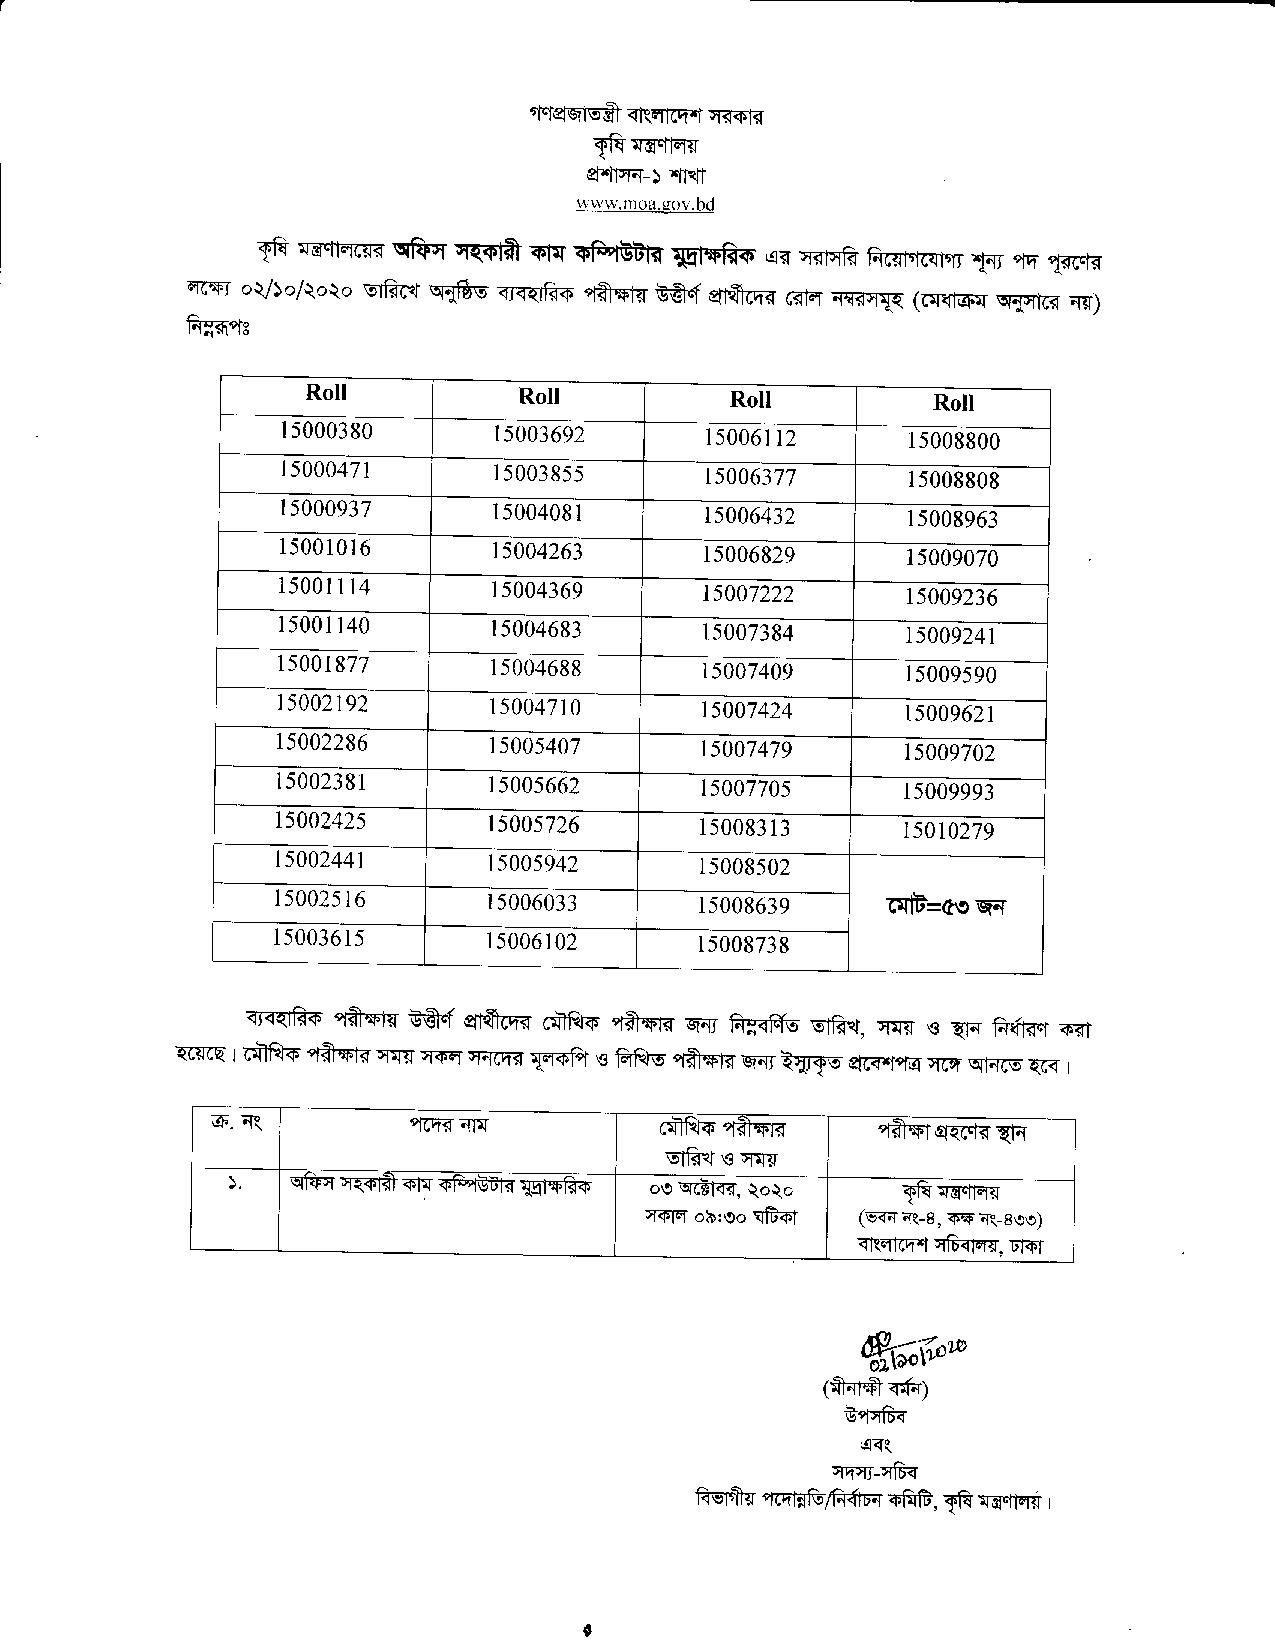 Ministry of Agriculture (MOA) practical exam result 2020